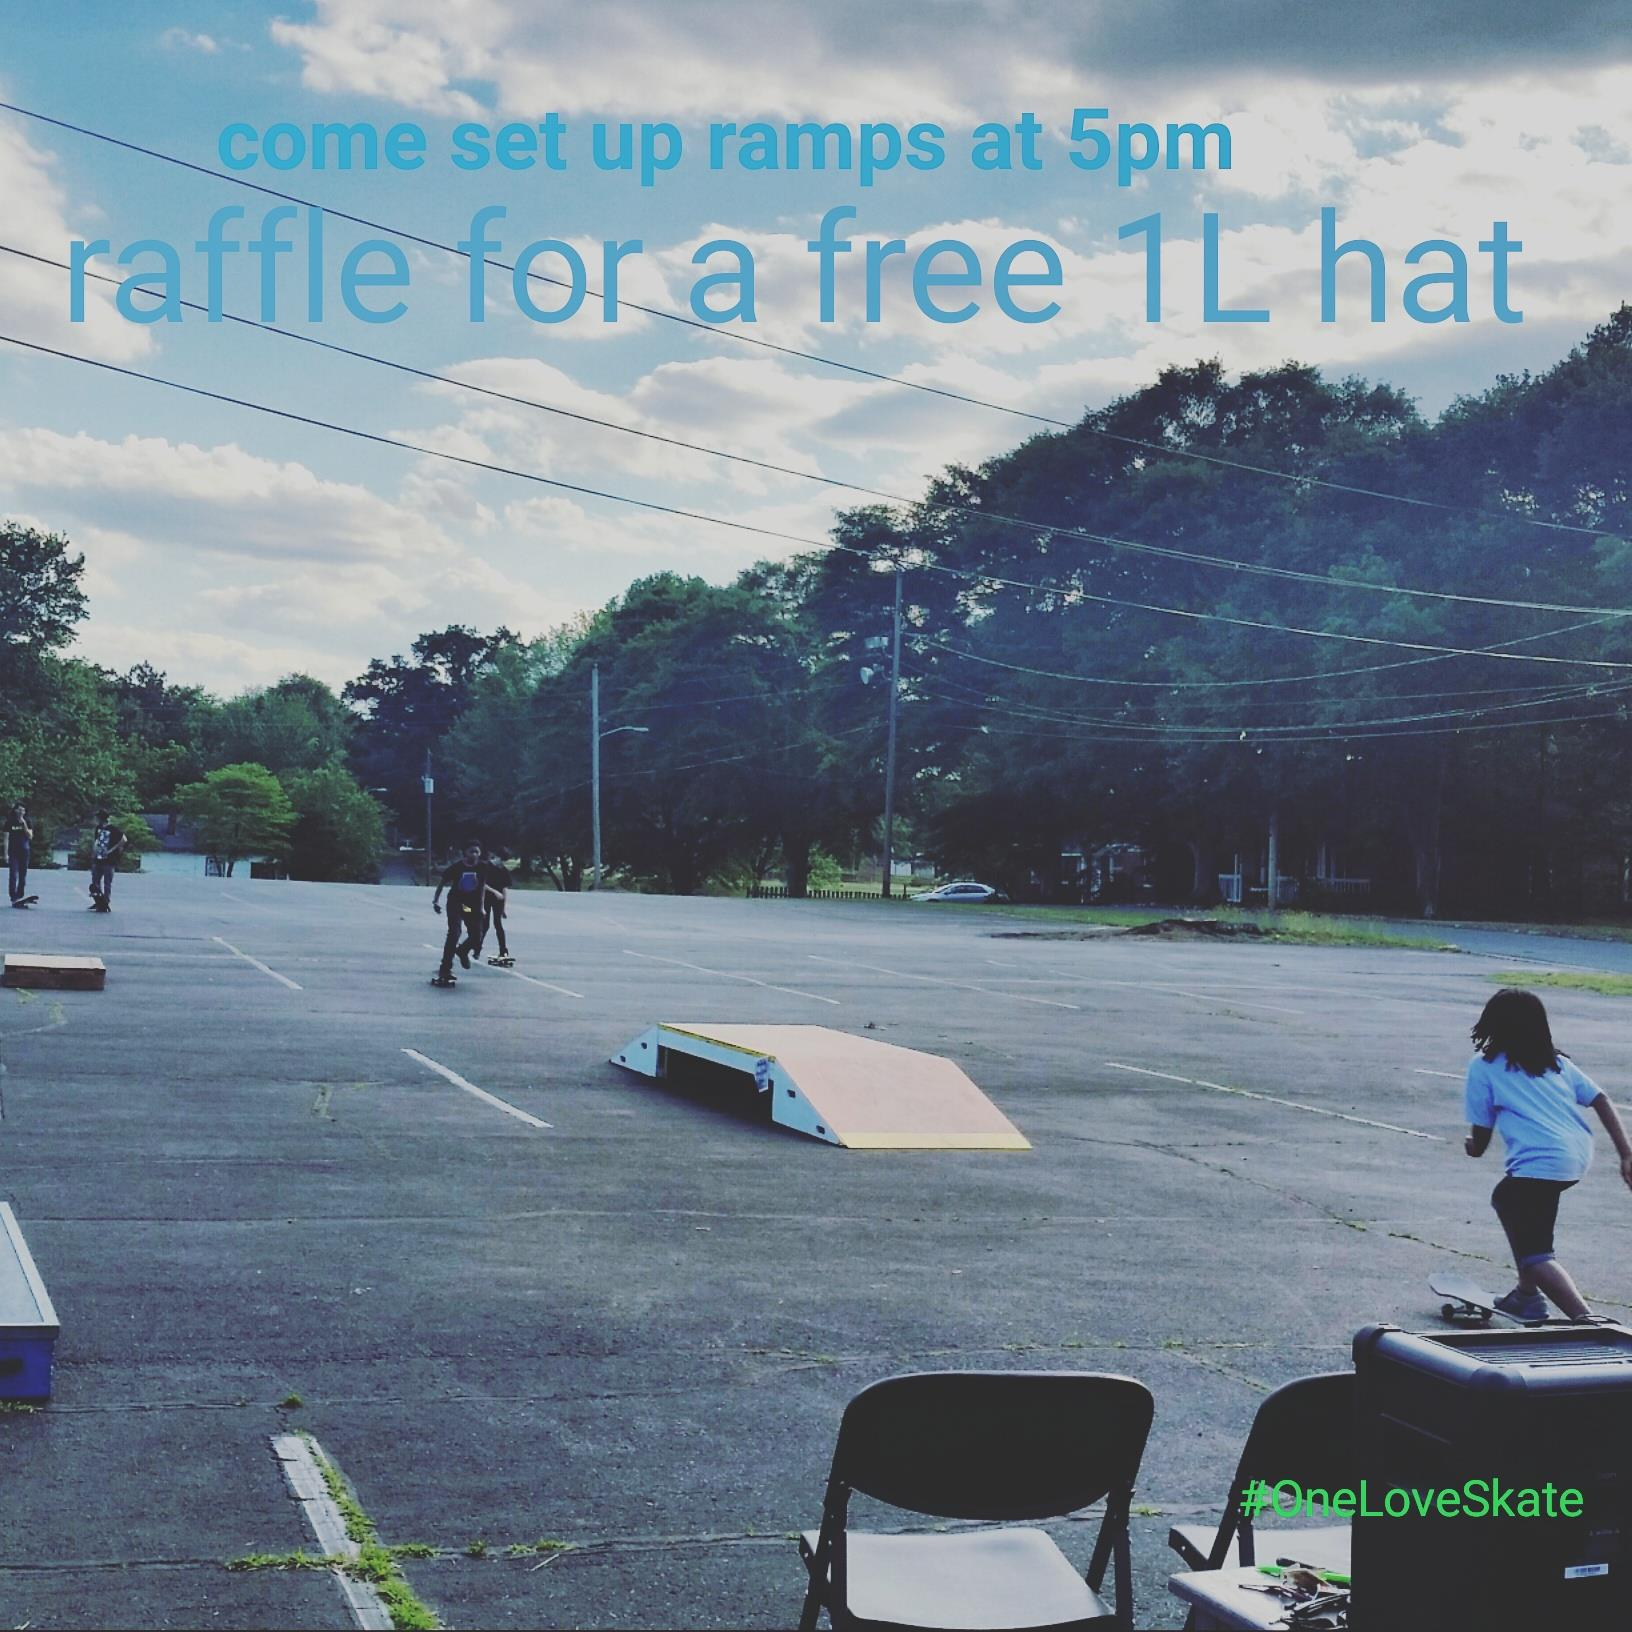 Pastor Skip at  Hope Community Church  purchased 4 One Love Hats to give away the last 4 weeks as we skated on Wednesdays.  Pastor Skip also   recently let us record him in a 1 minute 24 second video  encouraging people to support One Love Skate.